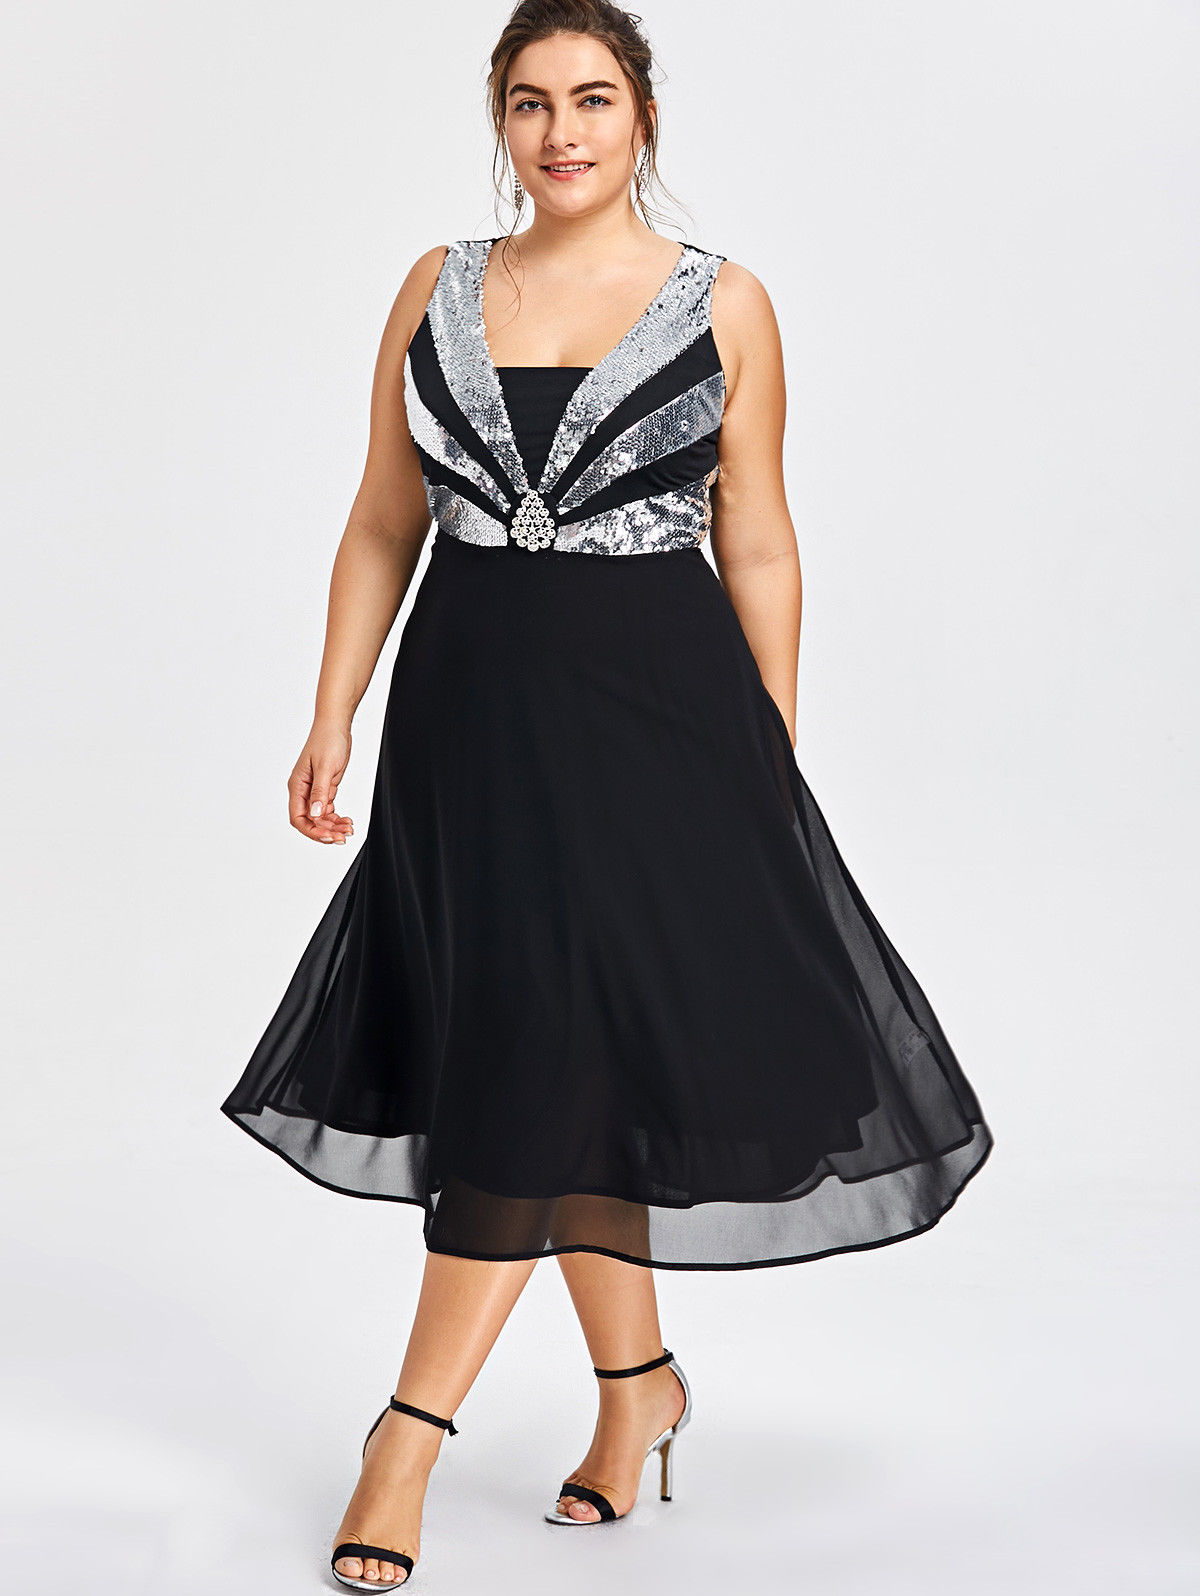 5e01af3608b £3.99 GBP - Women Plus Size Flare Glittery Sequined Evening Cocktail Party  Chiffon Dress  ebay  Fashion